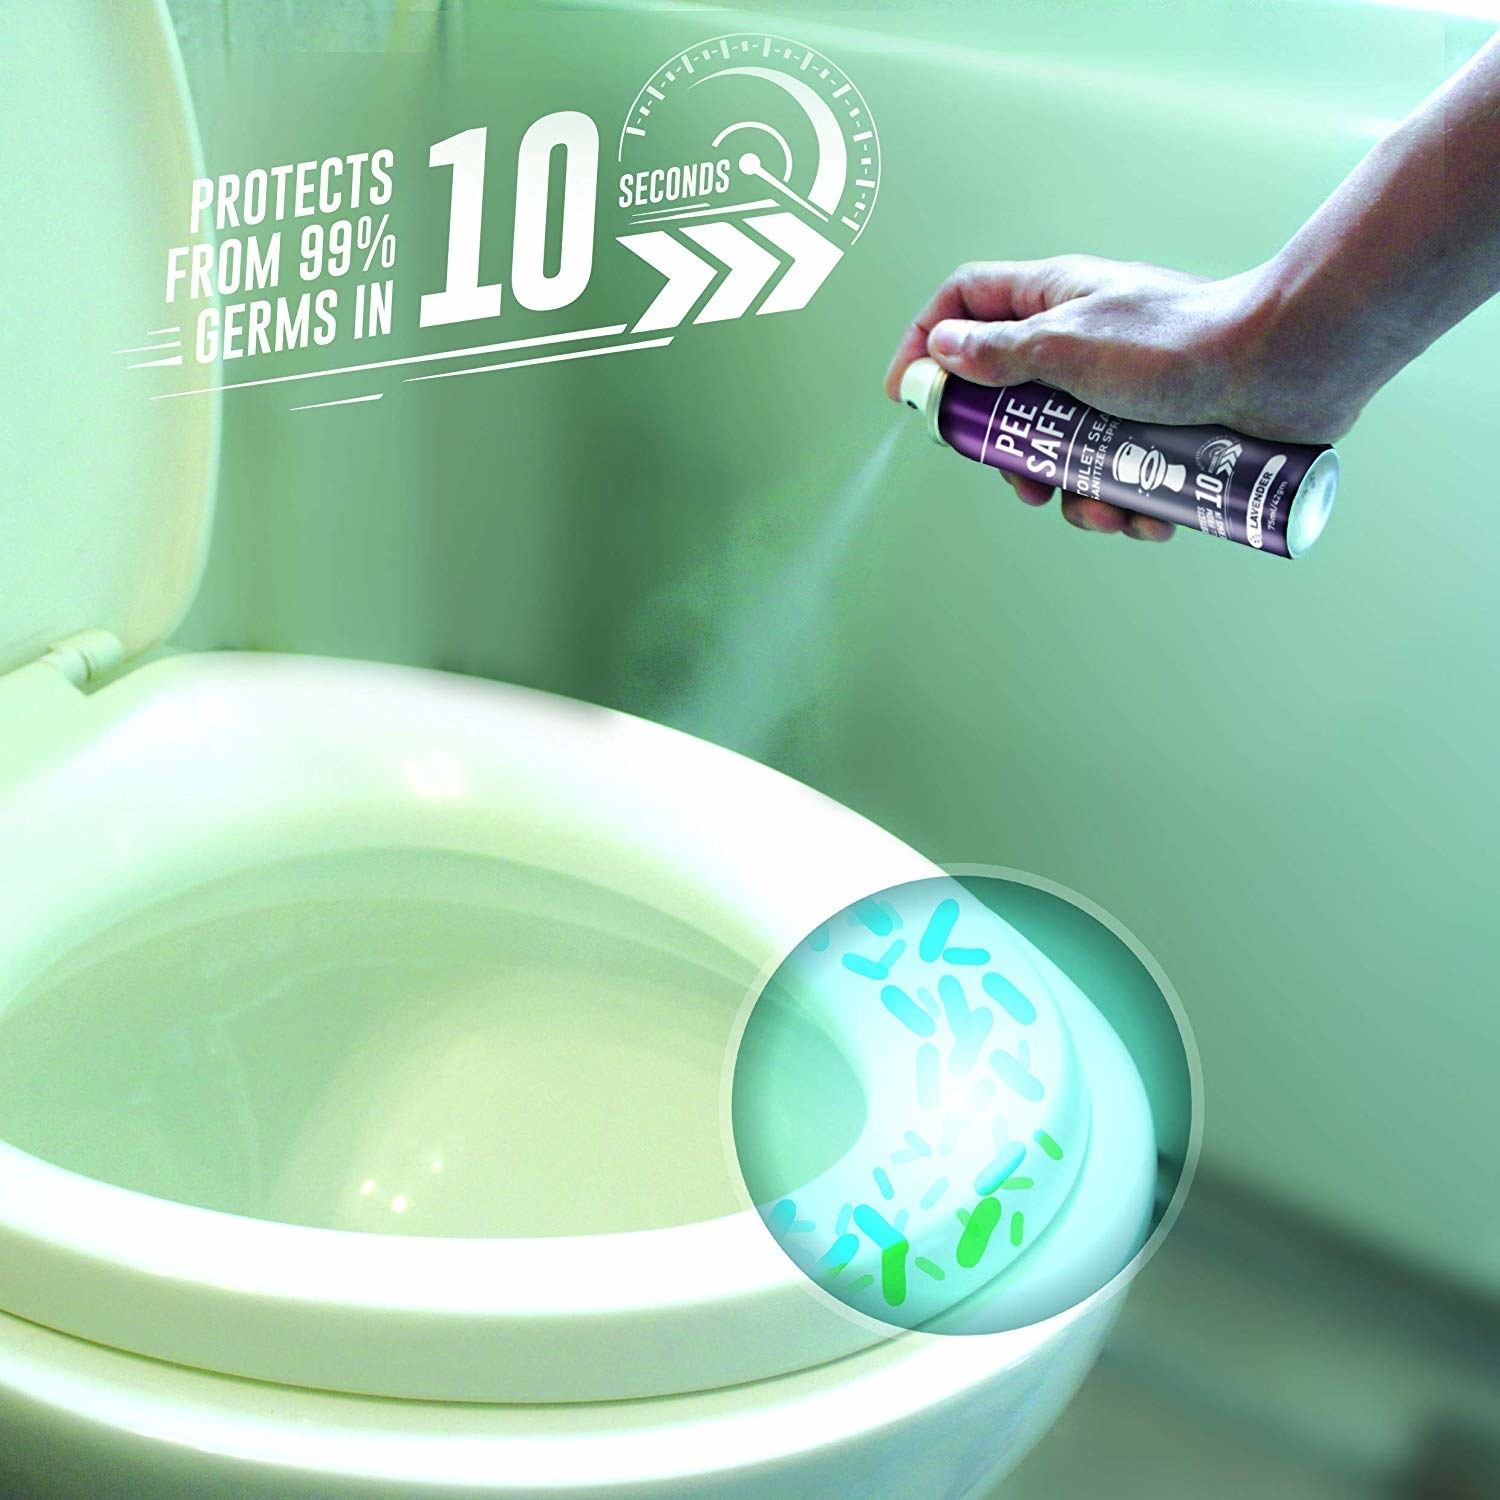 """A hand using the spray on a toilet, with text above it reading """"Protects from 99% germs in 10 seconds."""""""